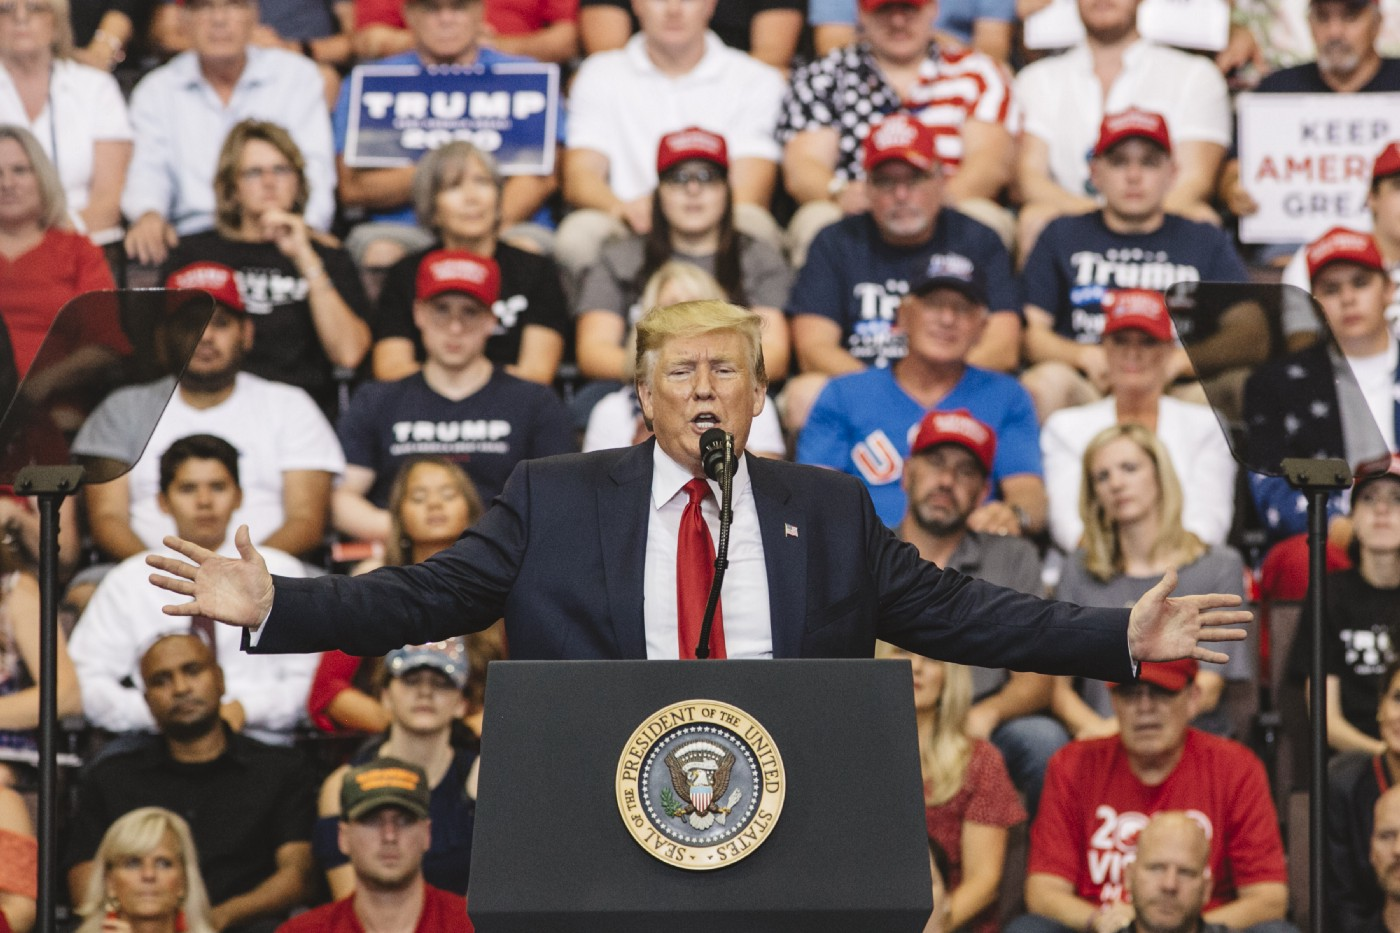 """Donald Trump speaking at a """"Keep America Great"""" campaign rally in Cincinnati, Ohio on August 1, 2019."""